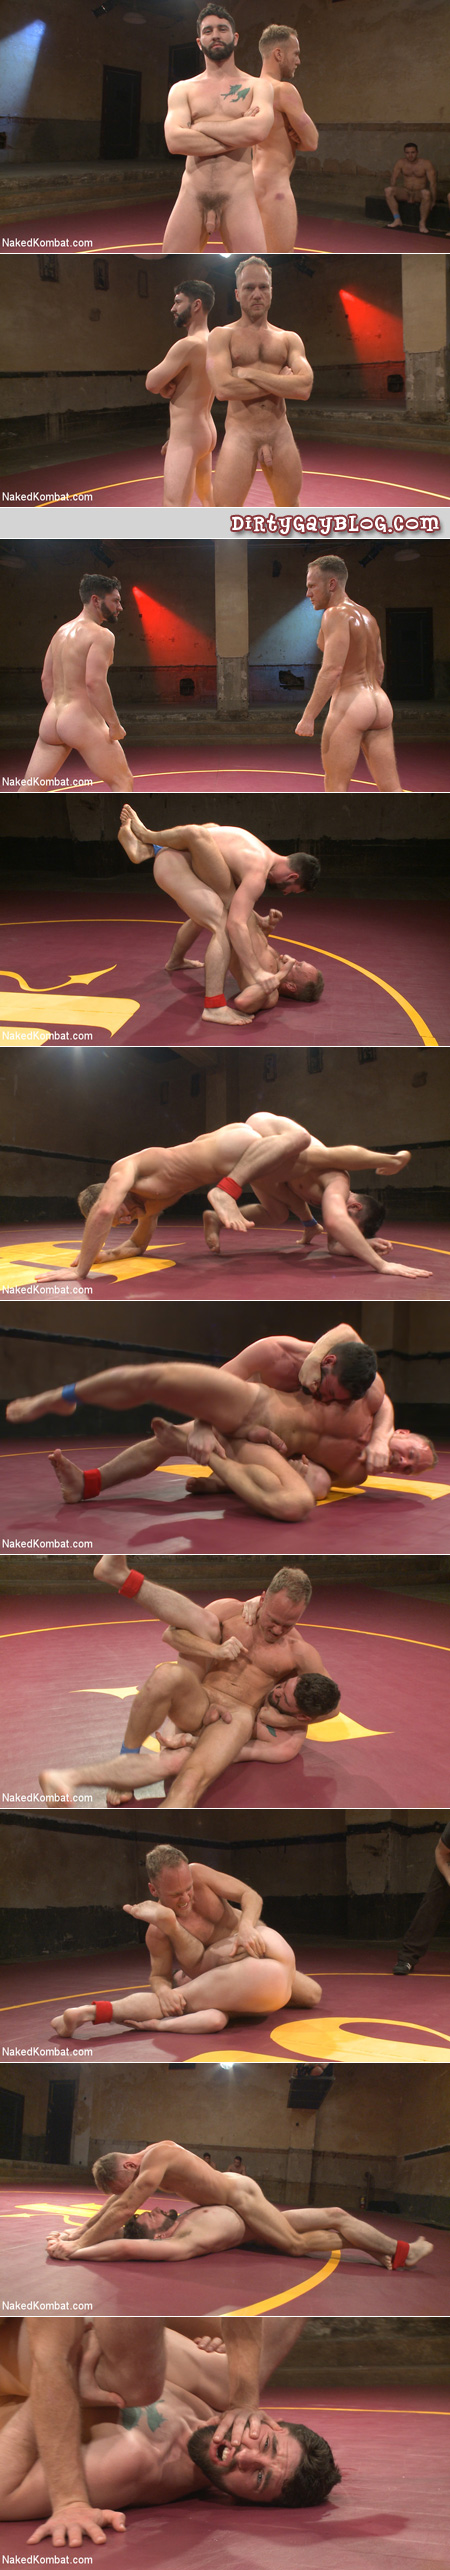 Naked men wrestling to see who will be top.